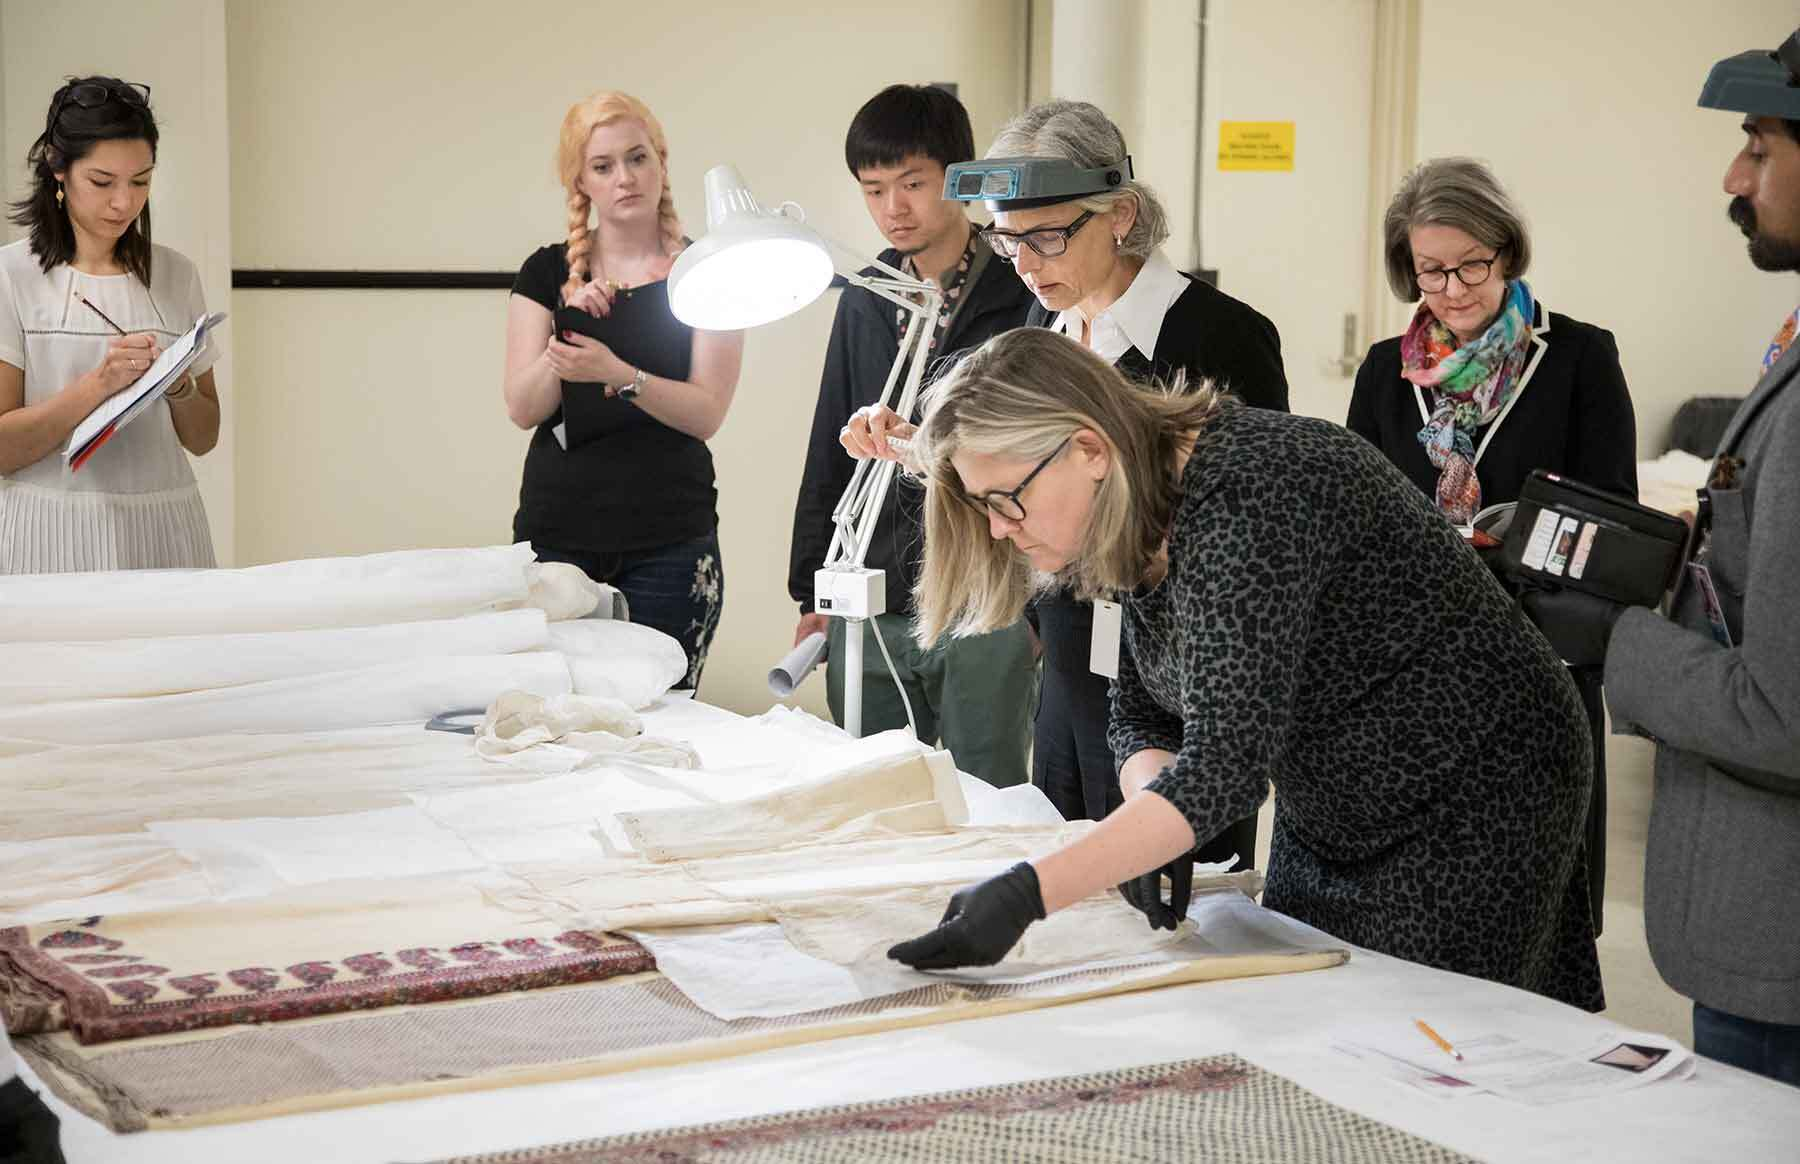 Curators reviewing Indian muslin dresses and Kashmiri shawls with visiting scholars and conservators.